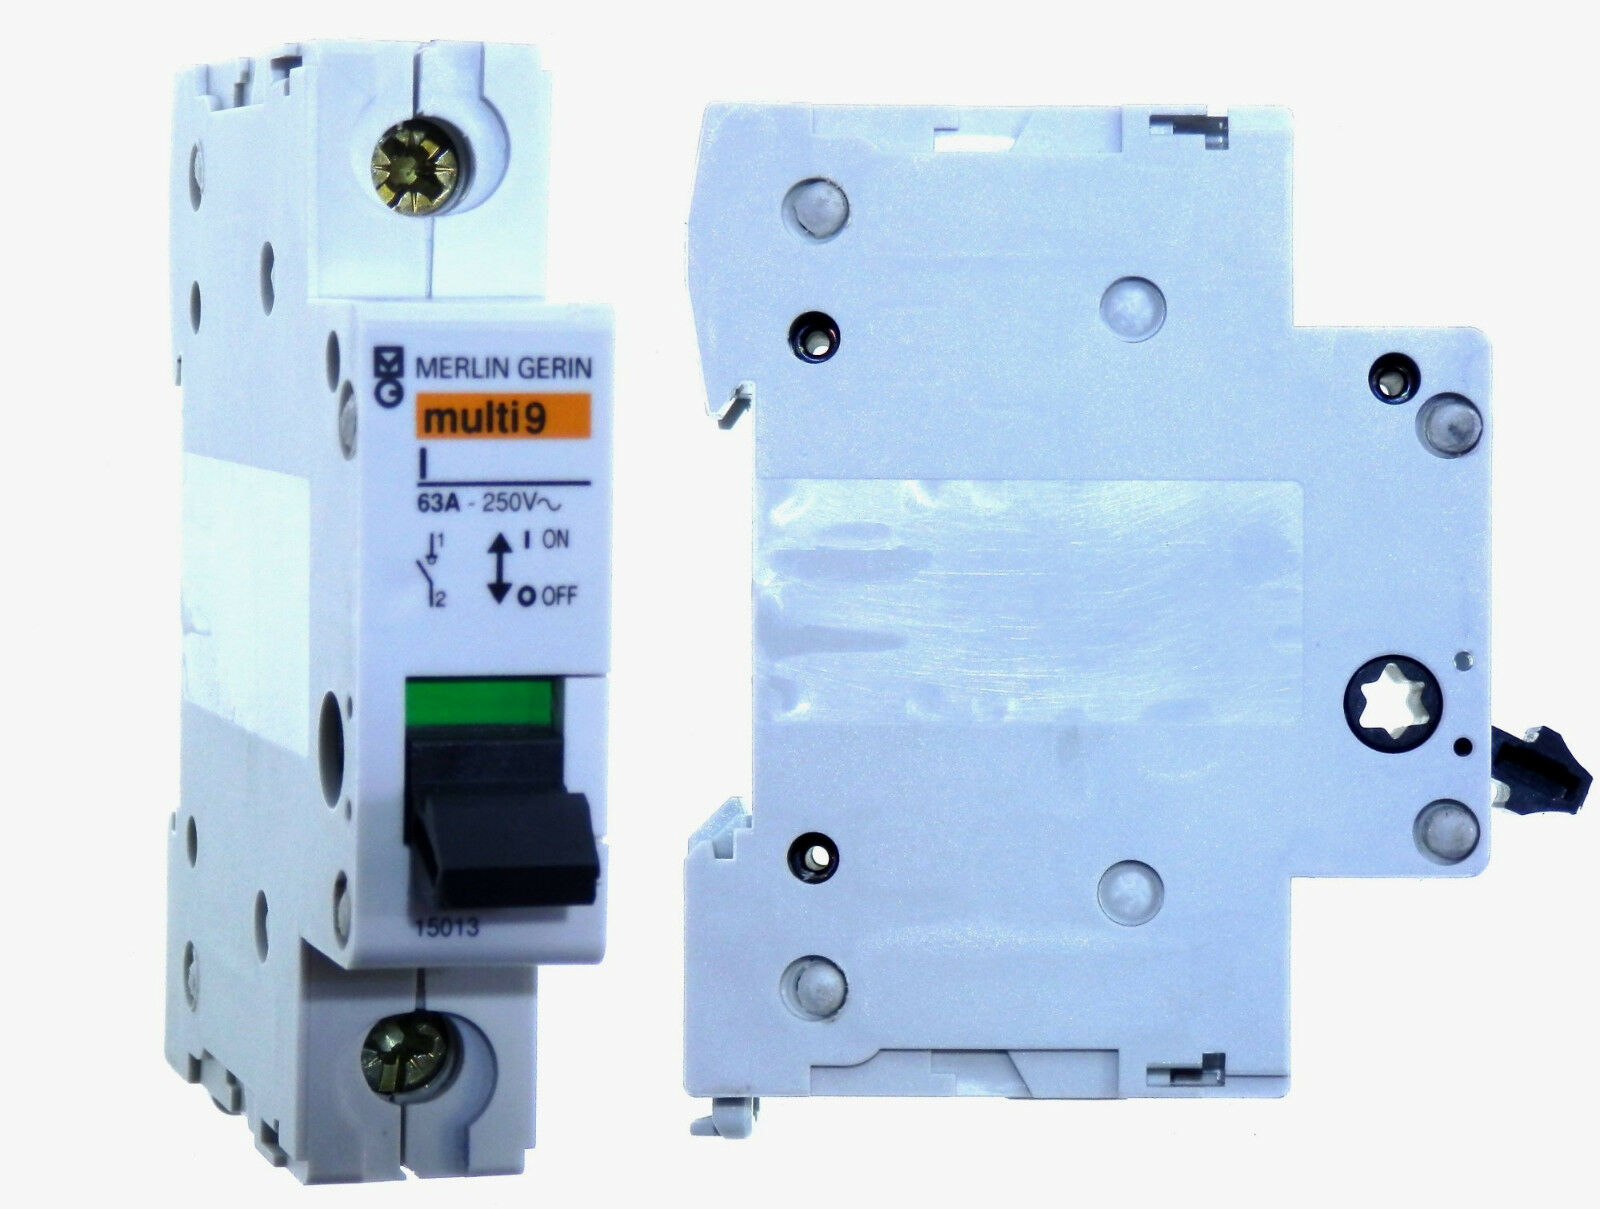 Merlin Gerin - Multi 9 15013 Type I 63A Single Pole Switch Disconnector